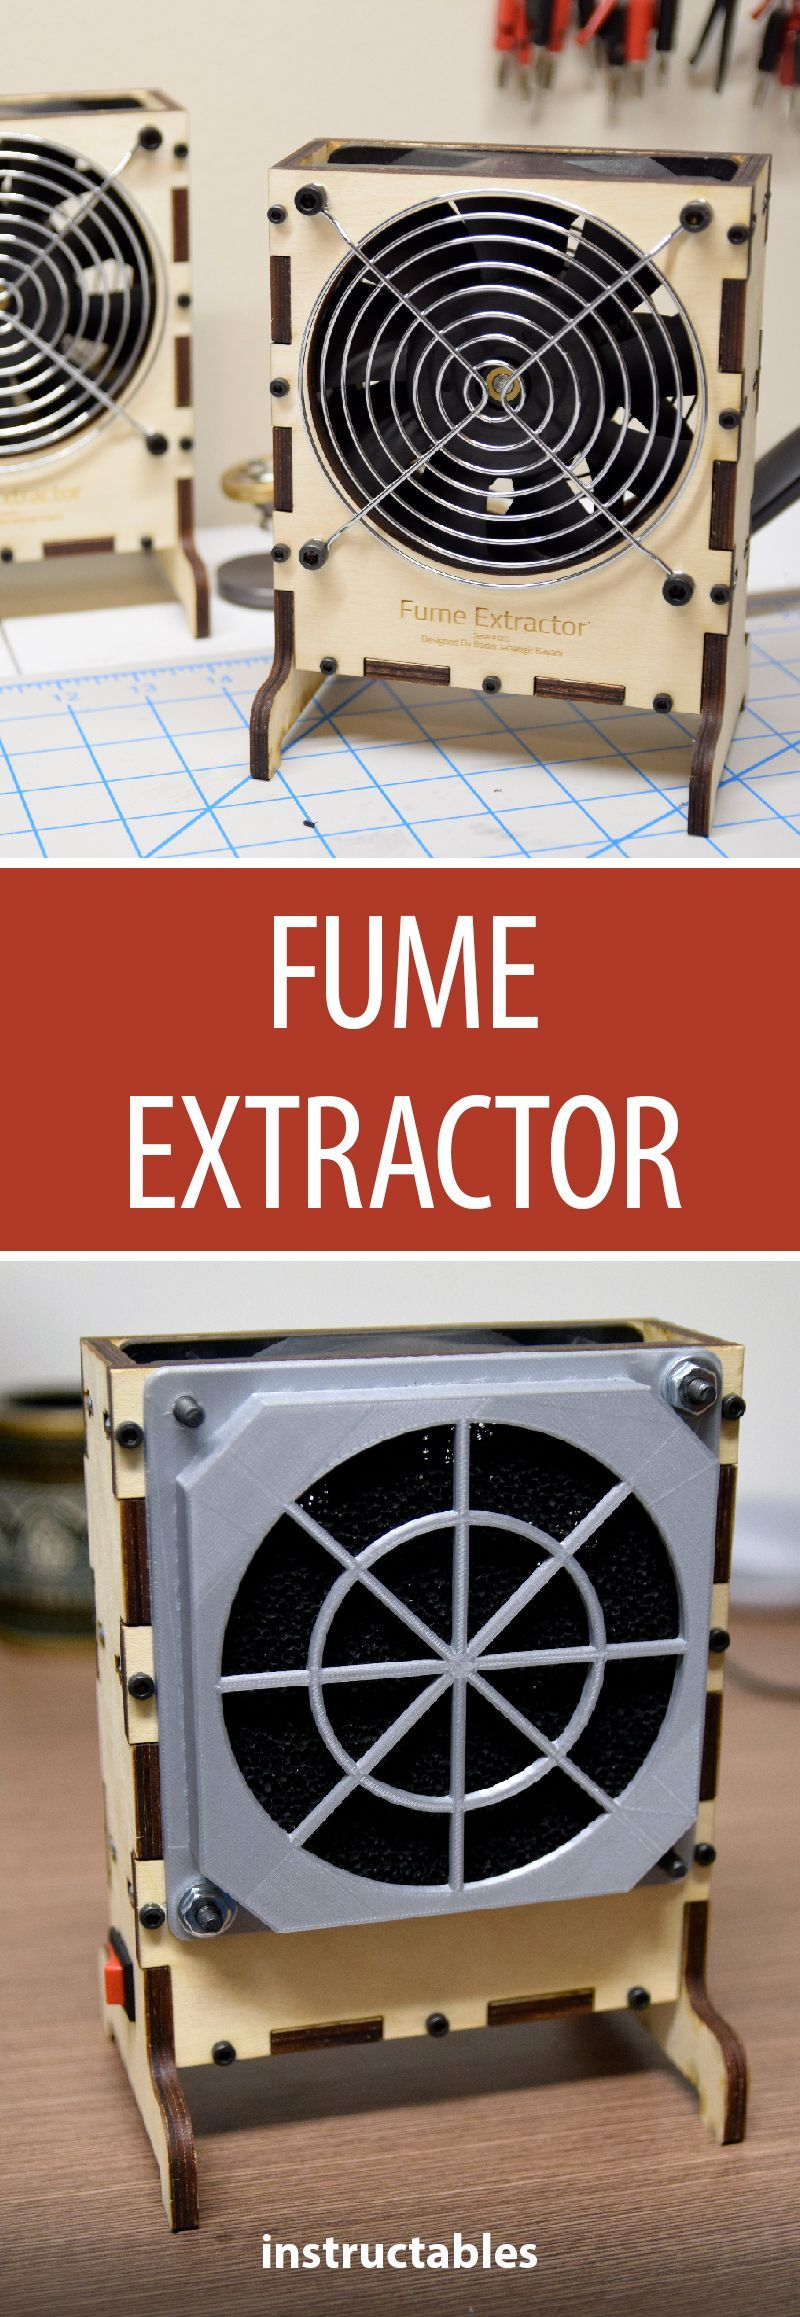 Fume extractor diy electronics electronics projects